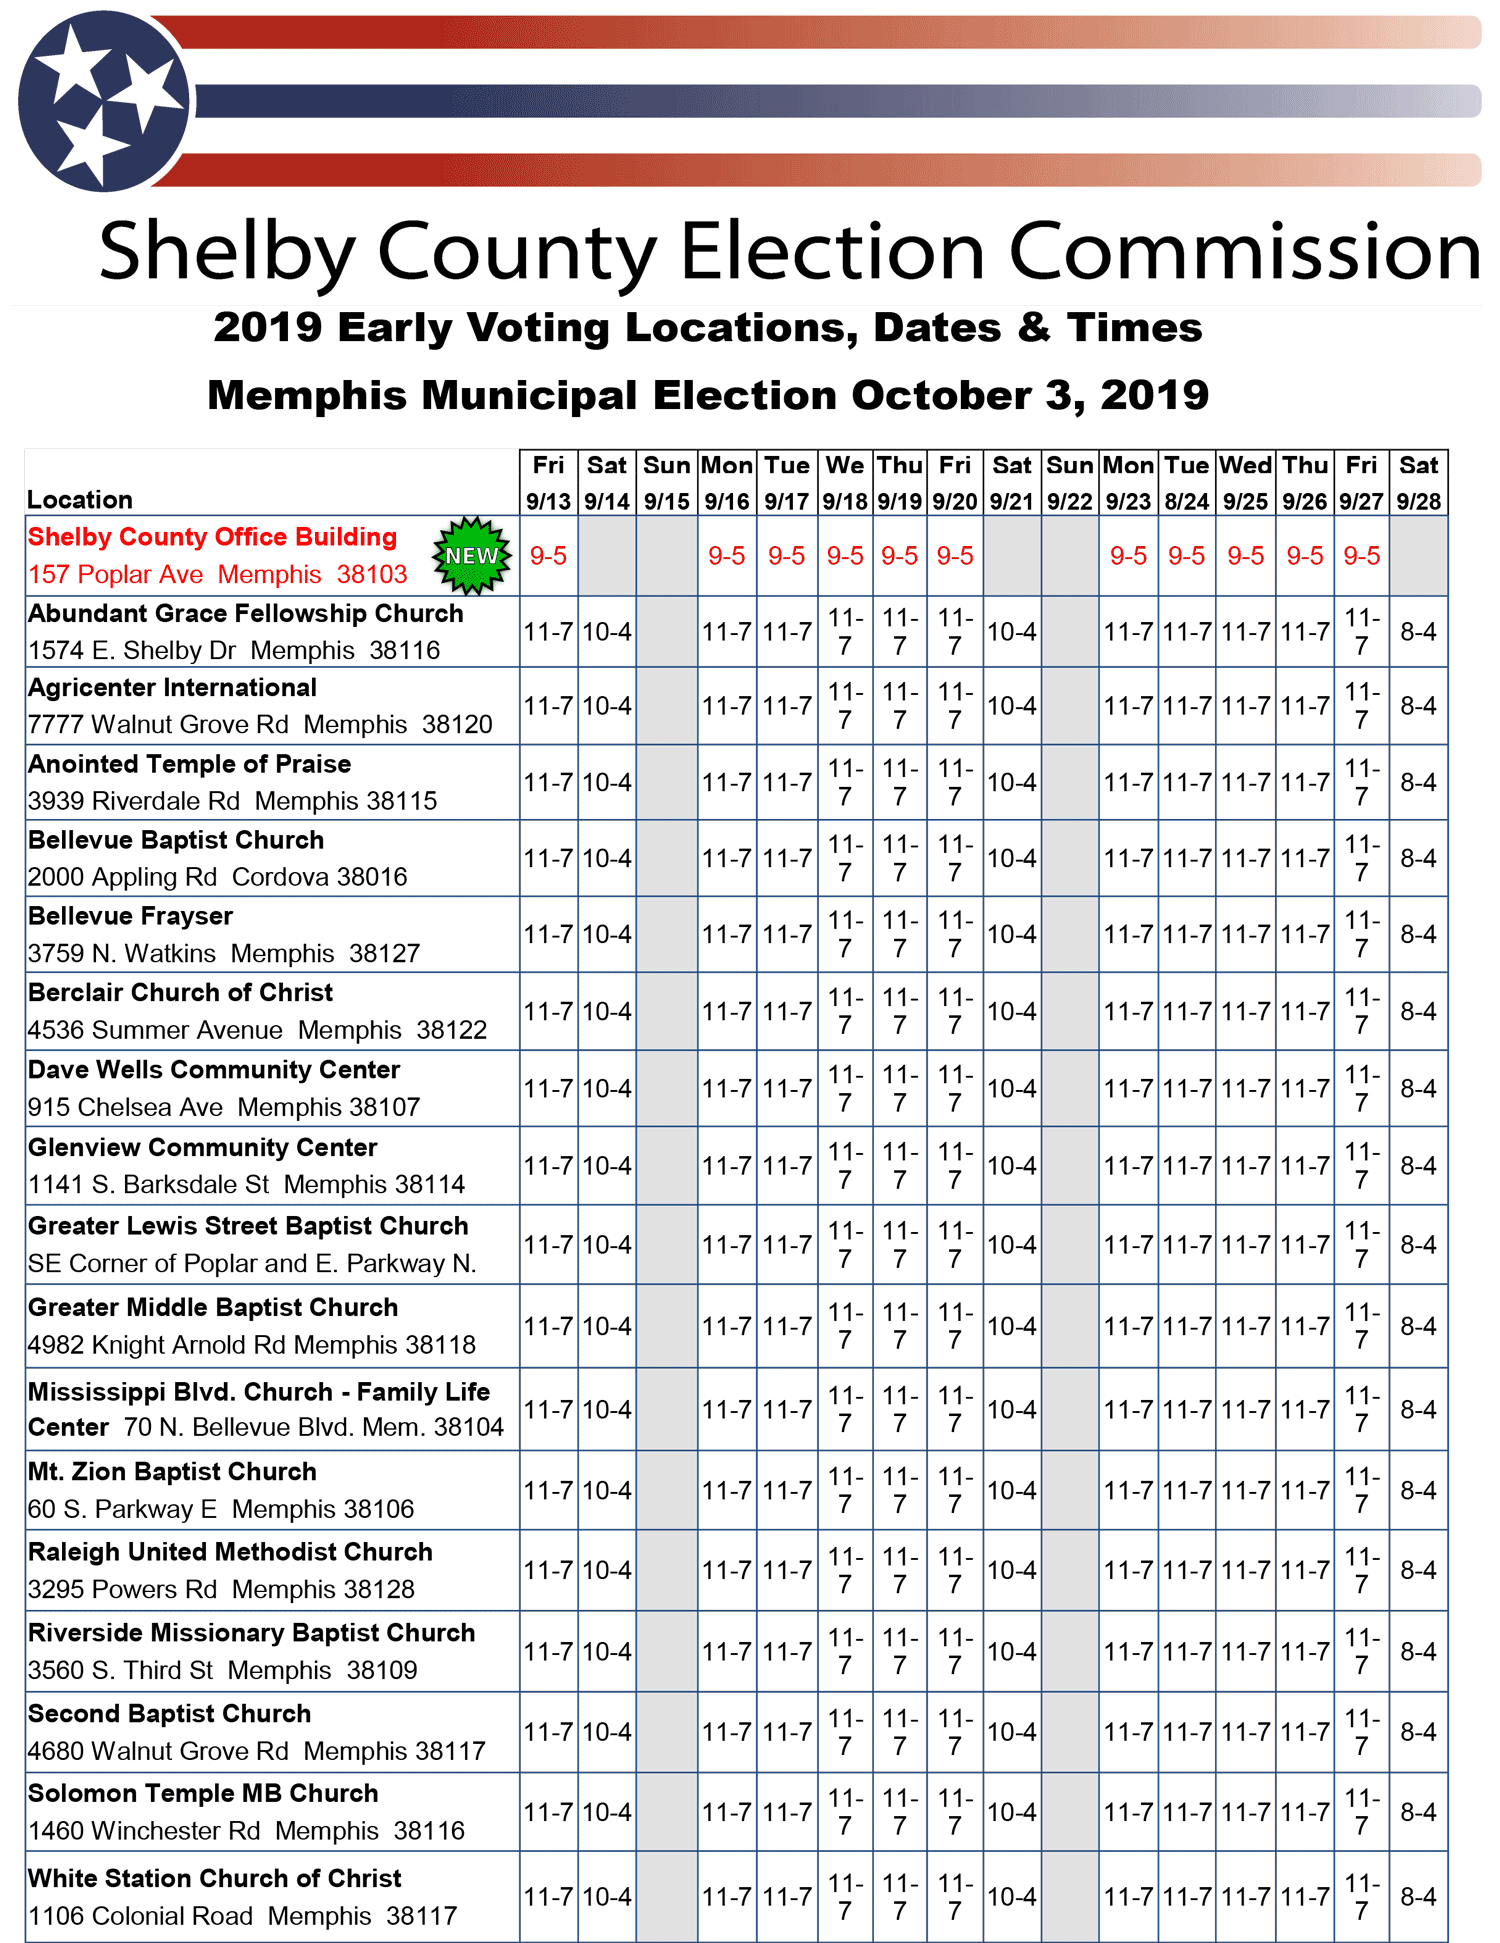 Shelby County Early Voting Schedule